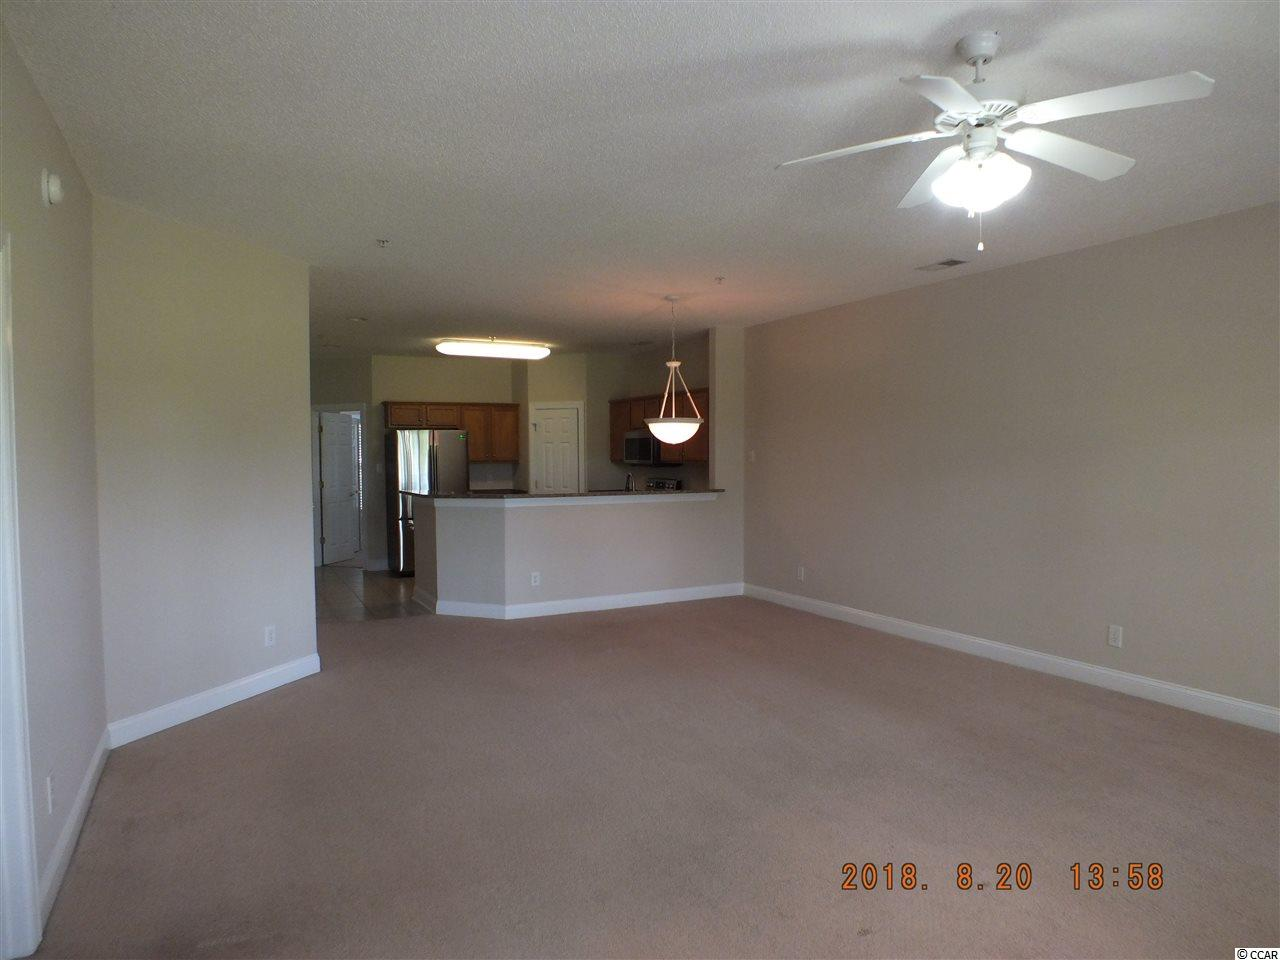 3 bedroom condo for sale at $147,000